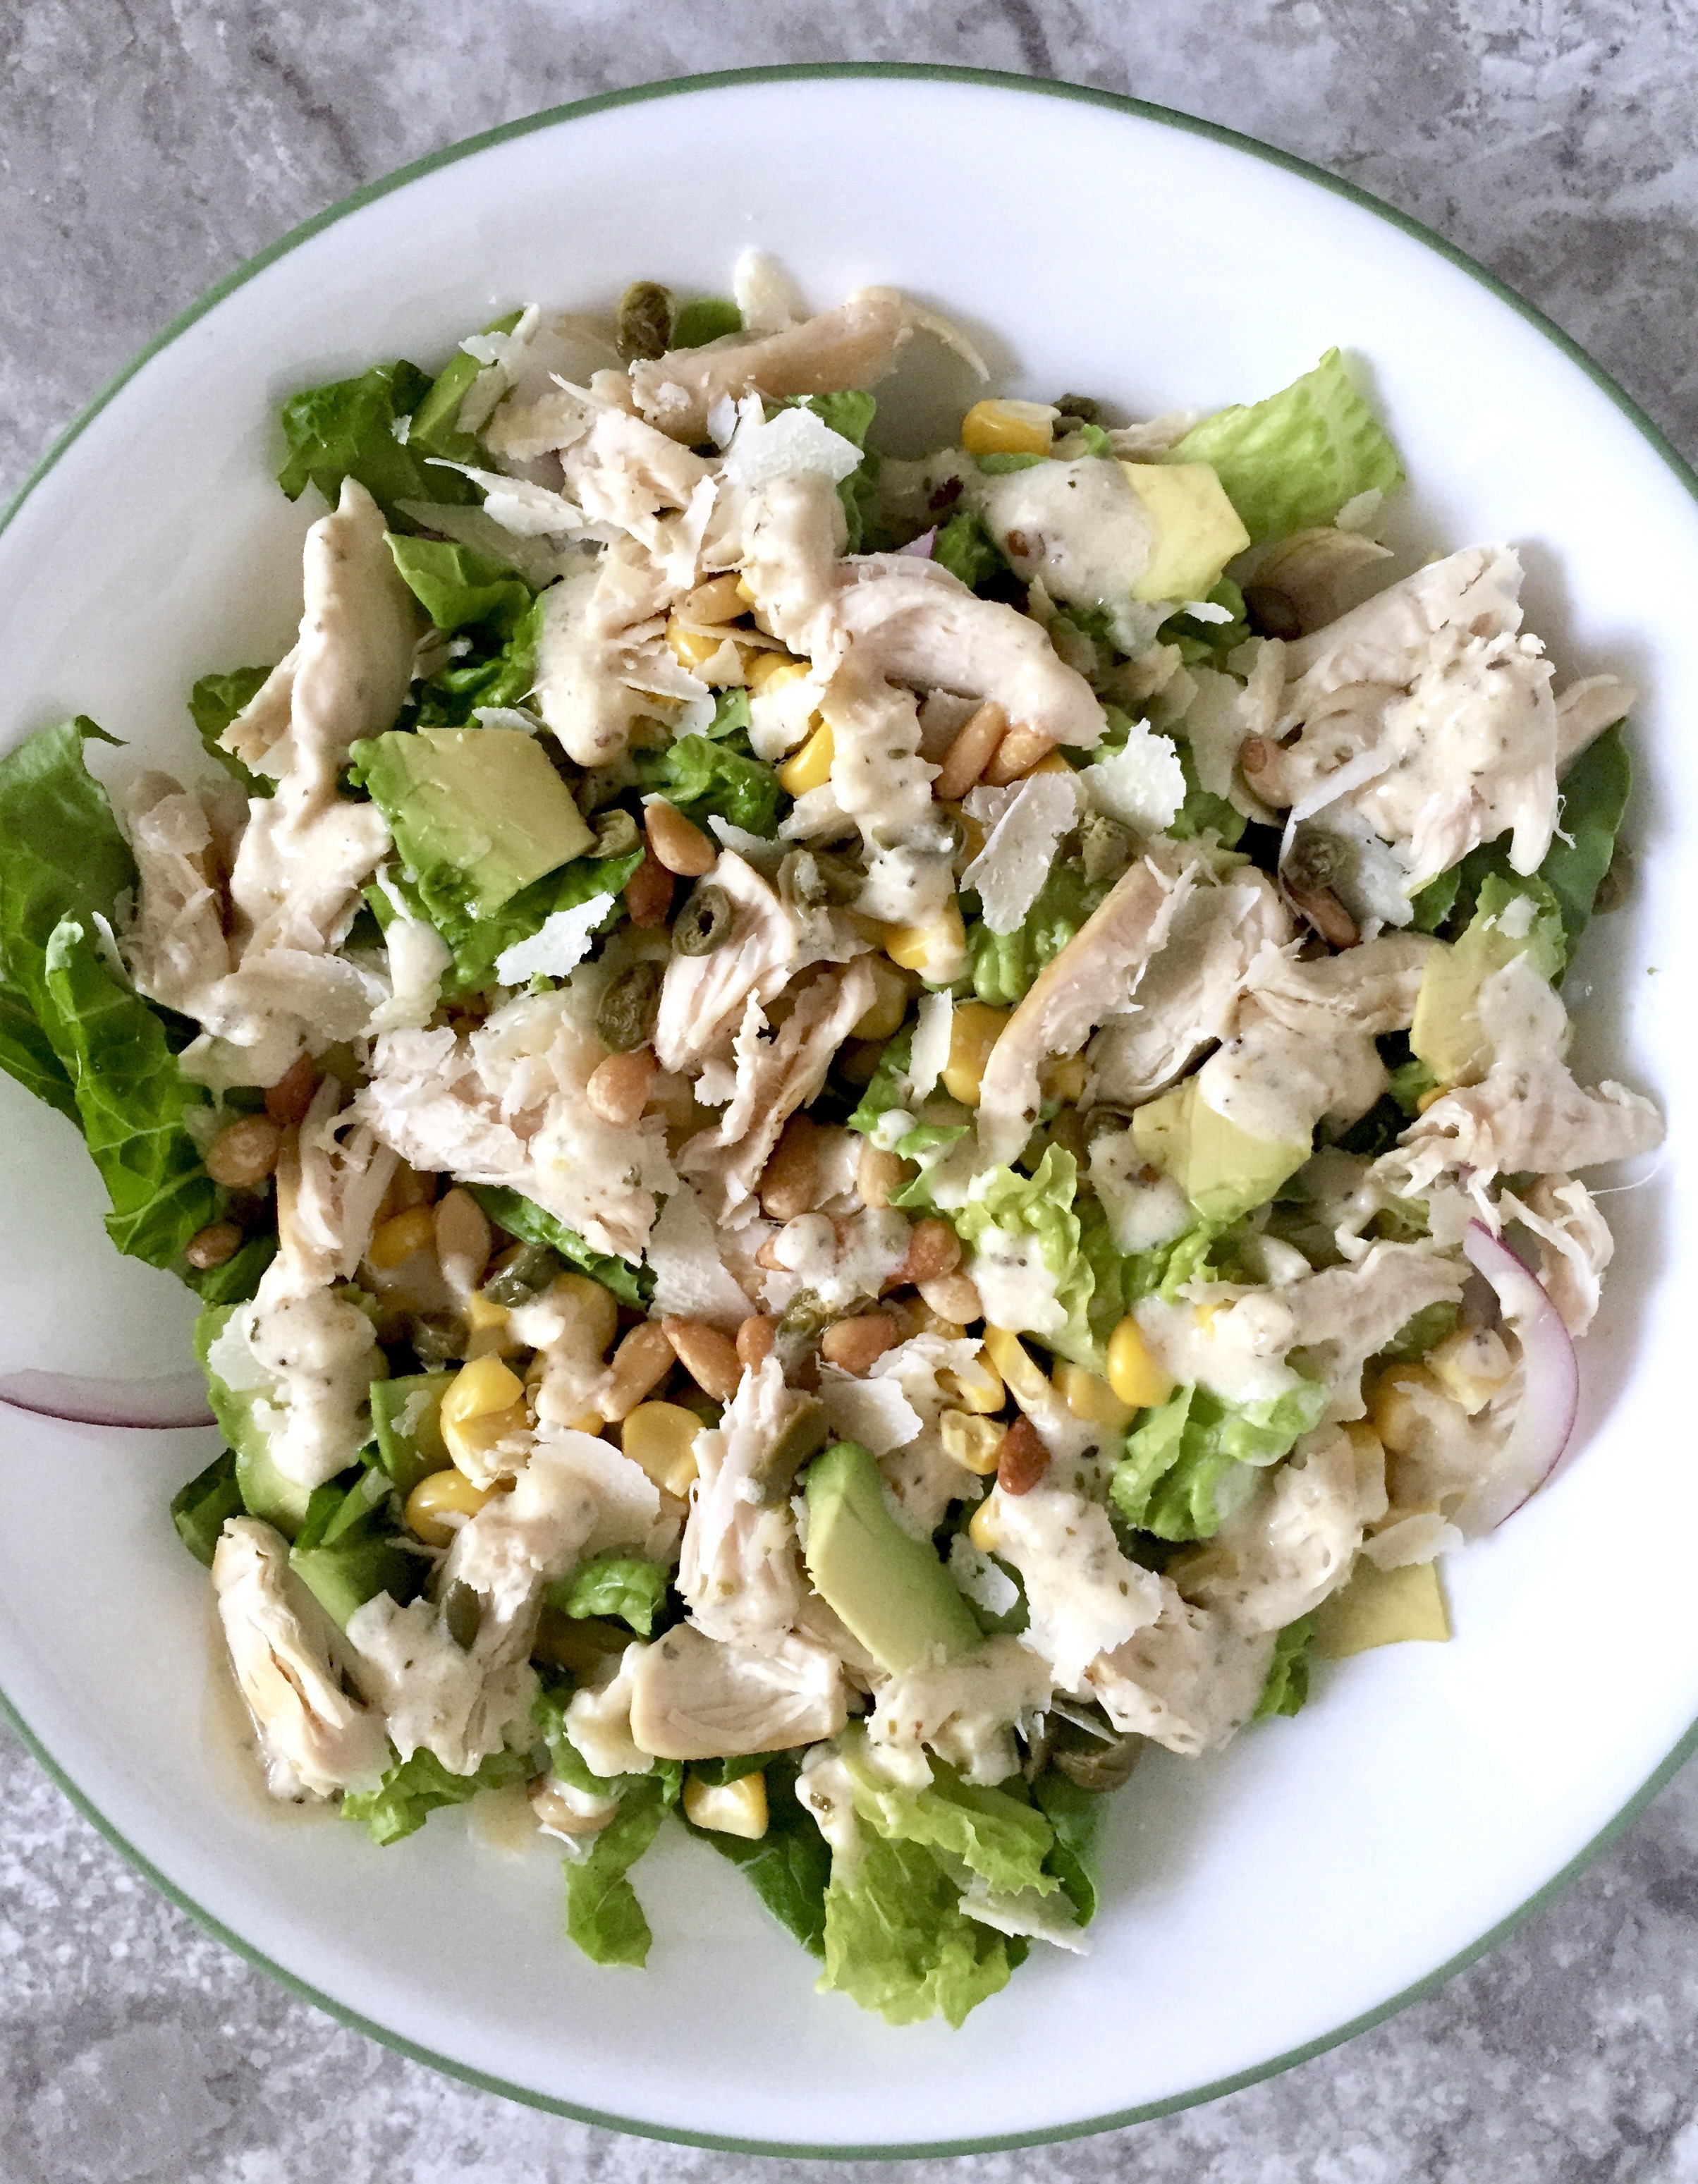 How to prepare a salad with pine nuts and chicken in different ways